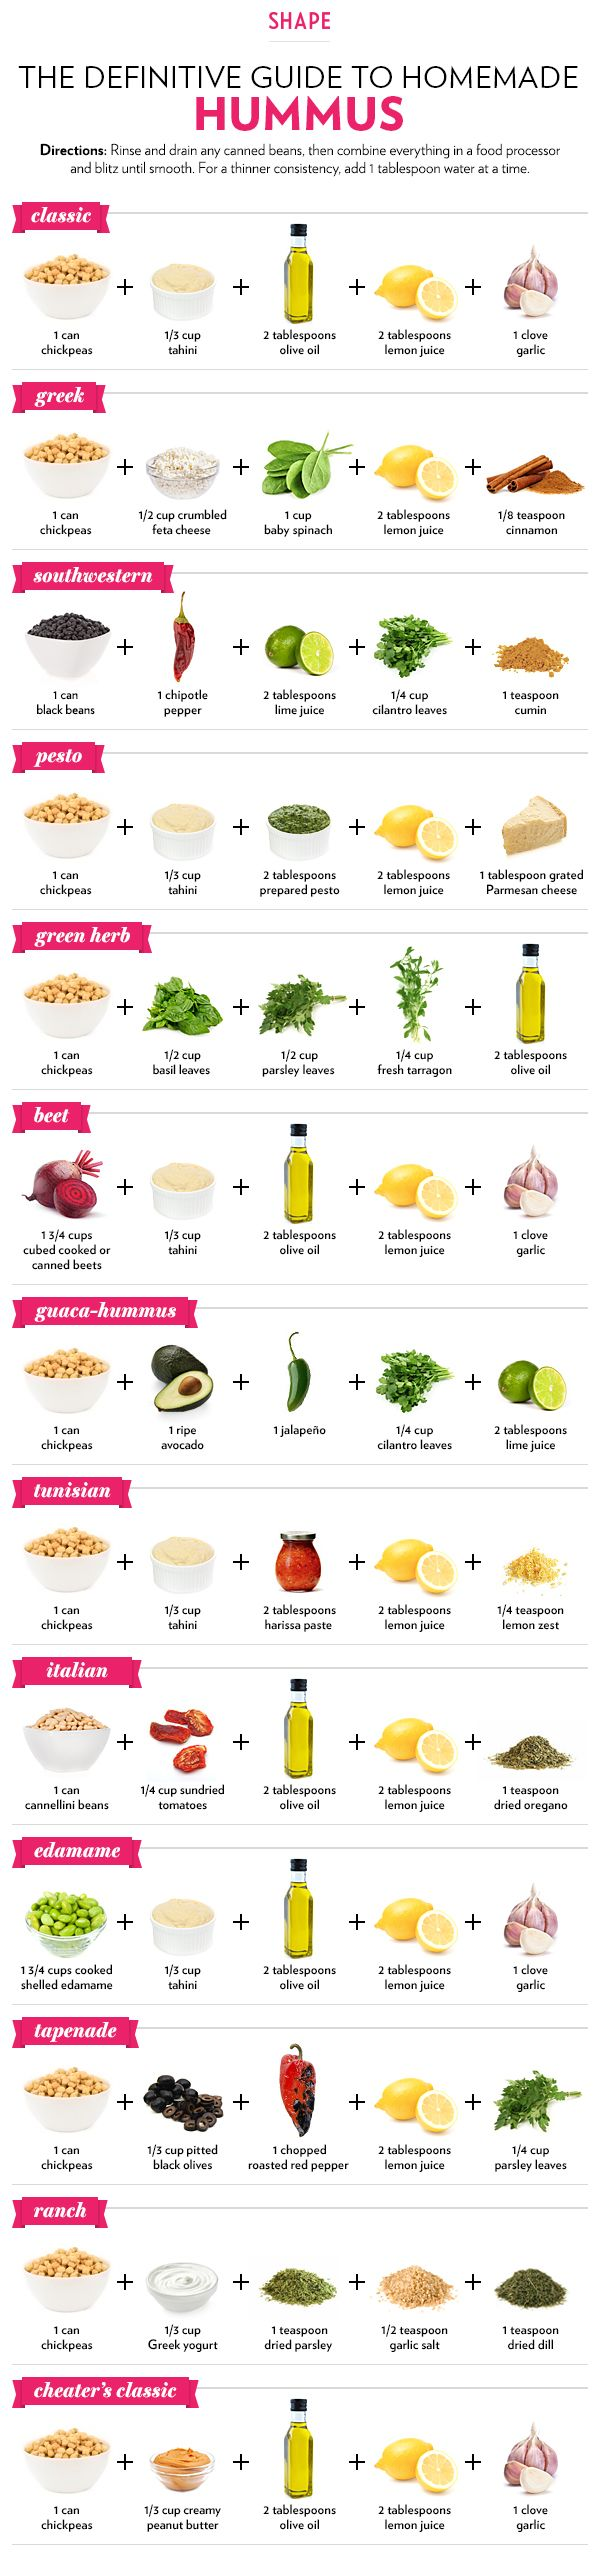 Try all these tasty different ways you can make hummus. Make these quick and easy recipes for a nutritious snack with veggies or when entertaining a crowd. Everyone will enjoy these mouth-watering recipes.